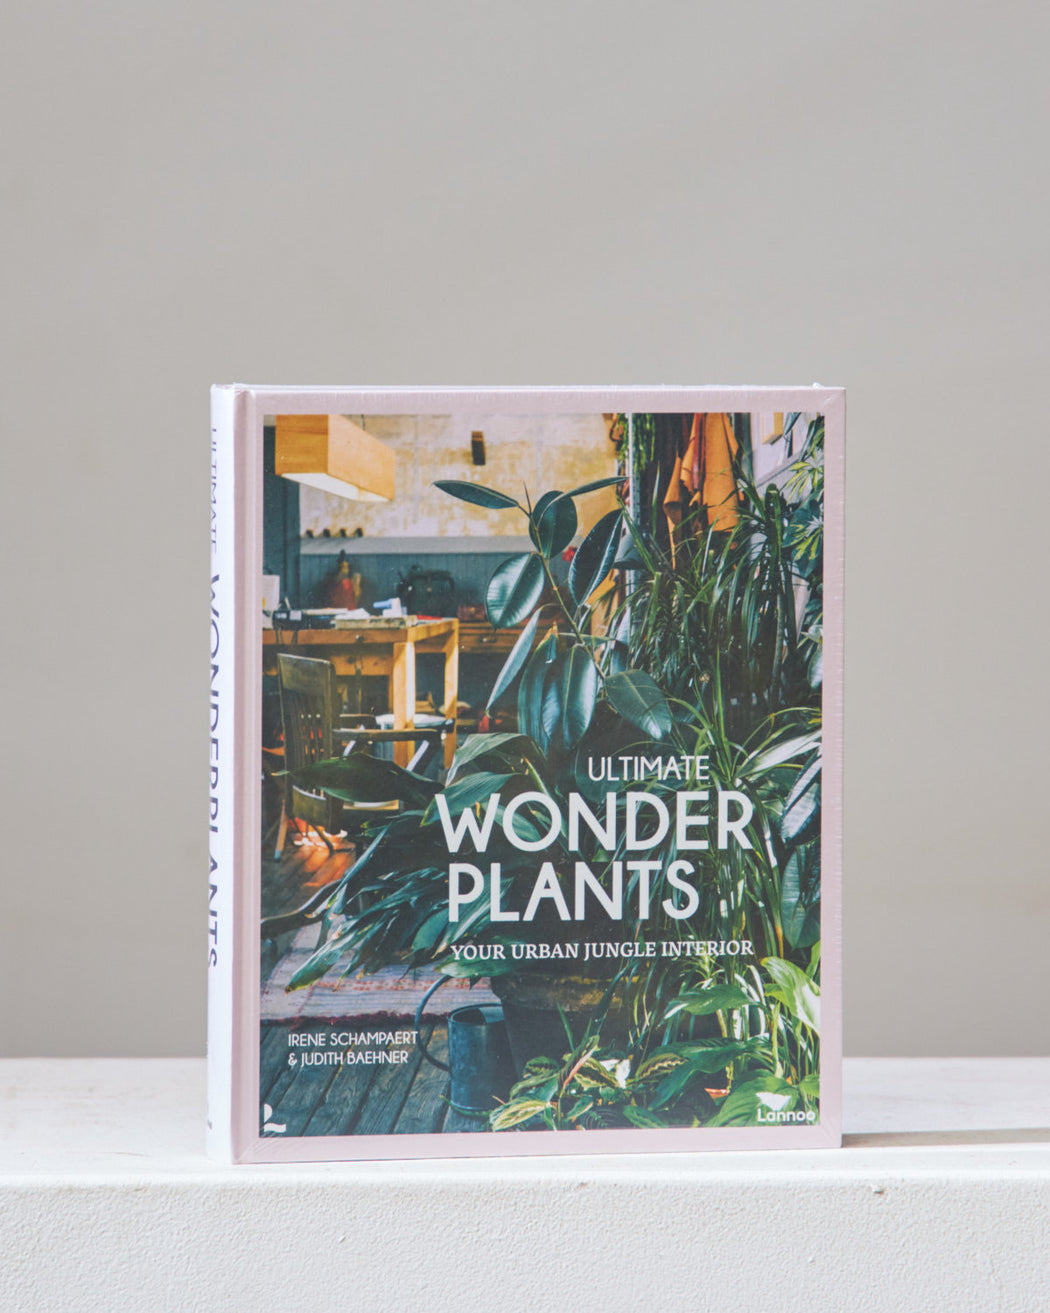 ULTIMATE WONDER PLANTS Book